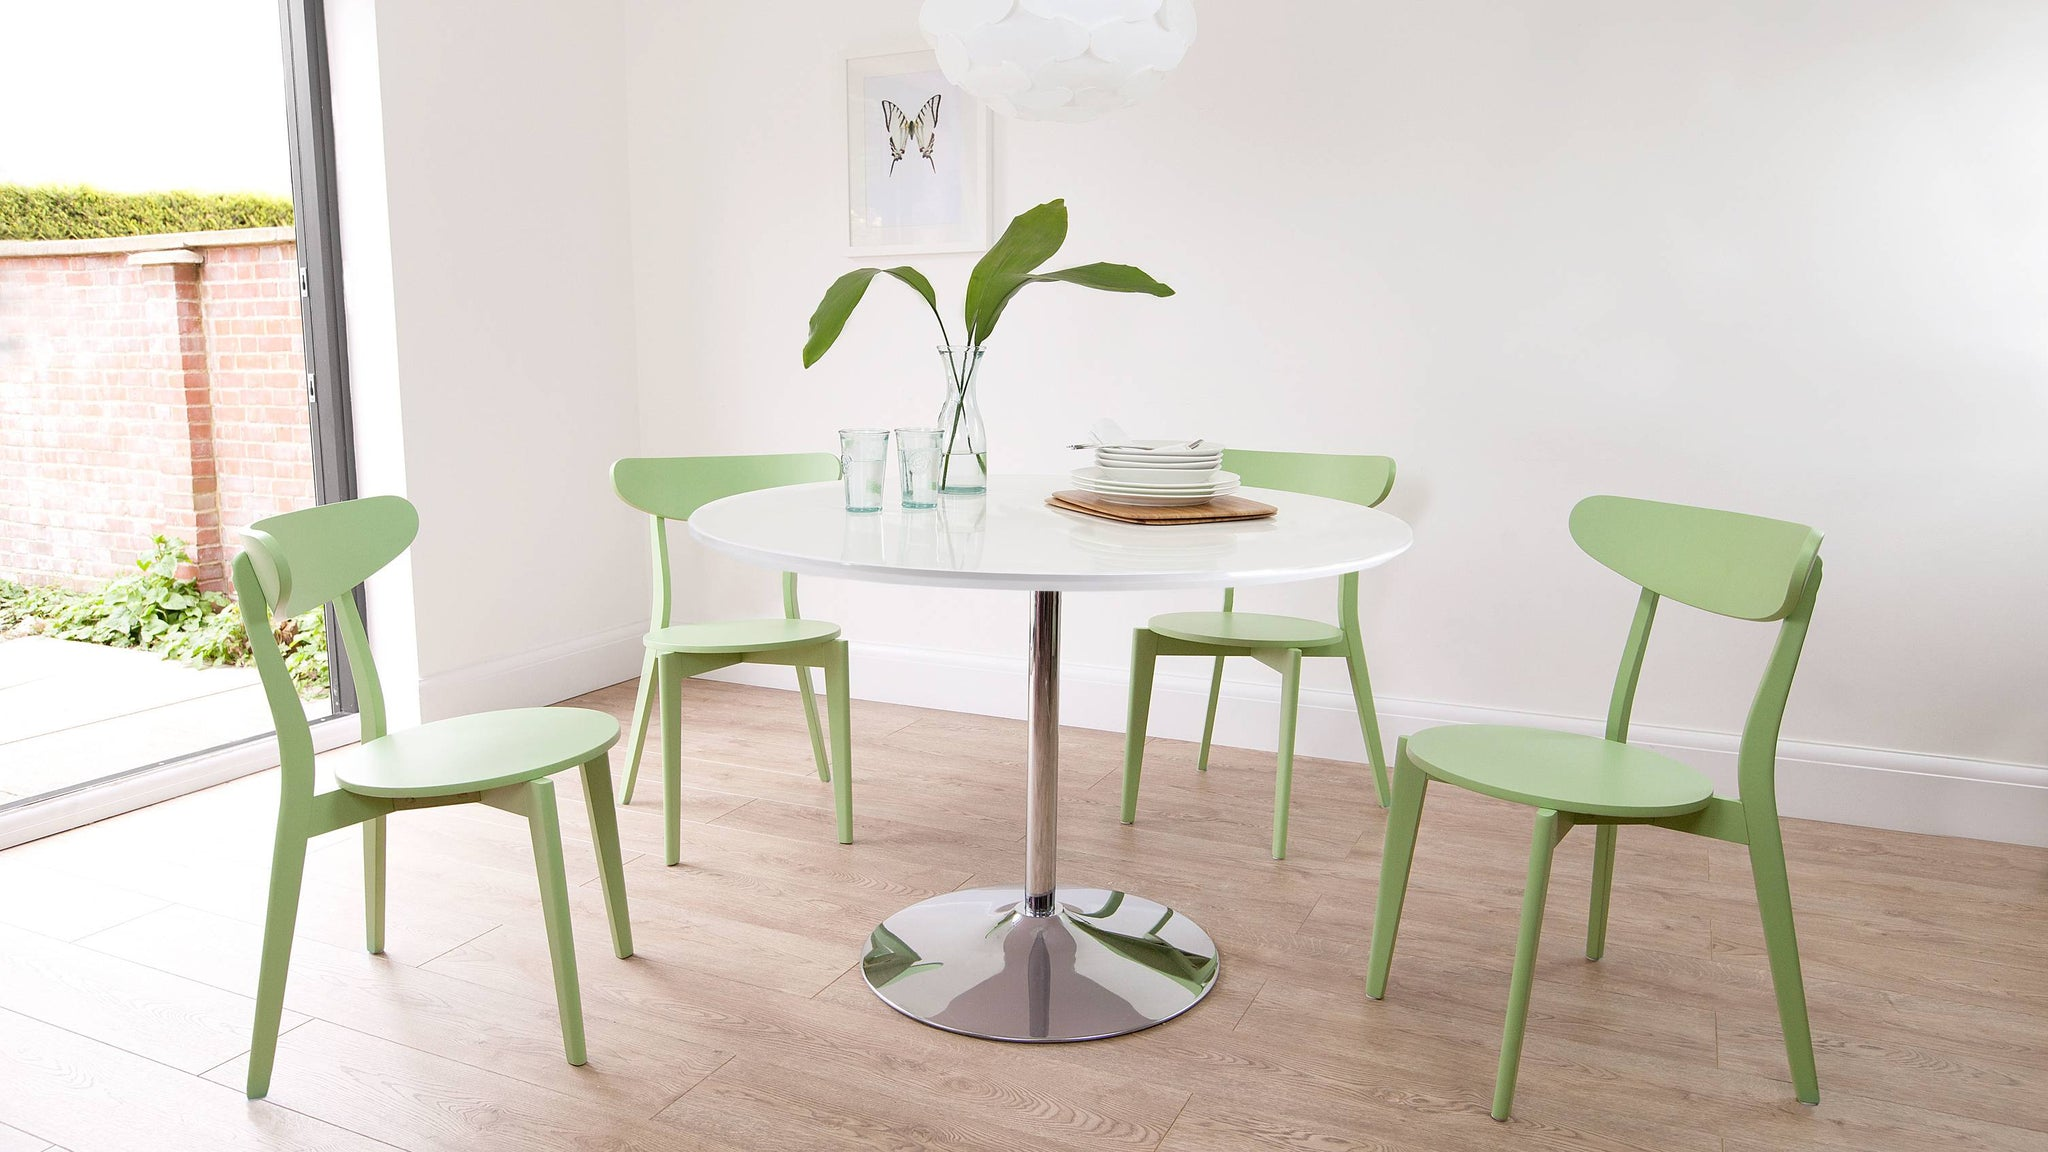 Naro Round White Gloss and Senn Colourful Dining Set